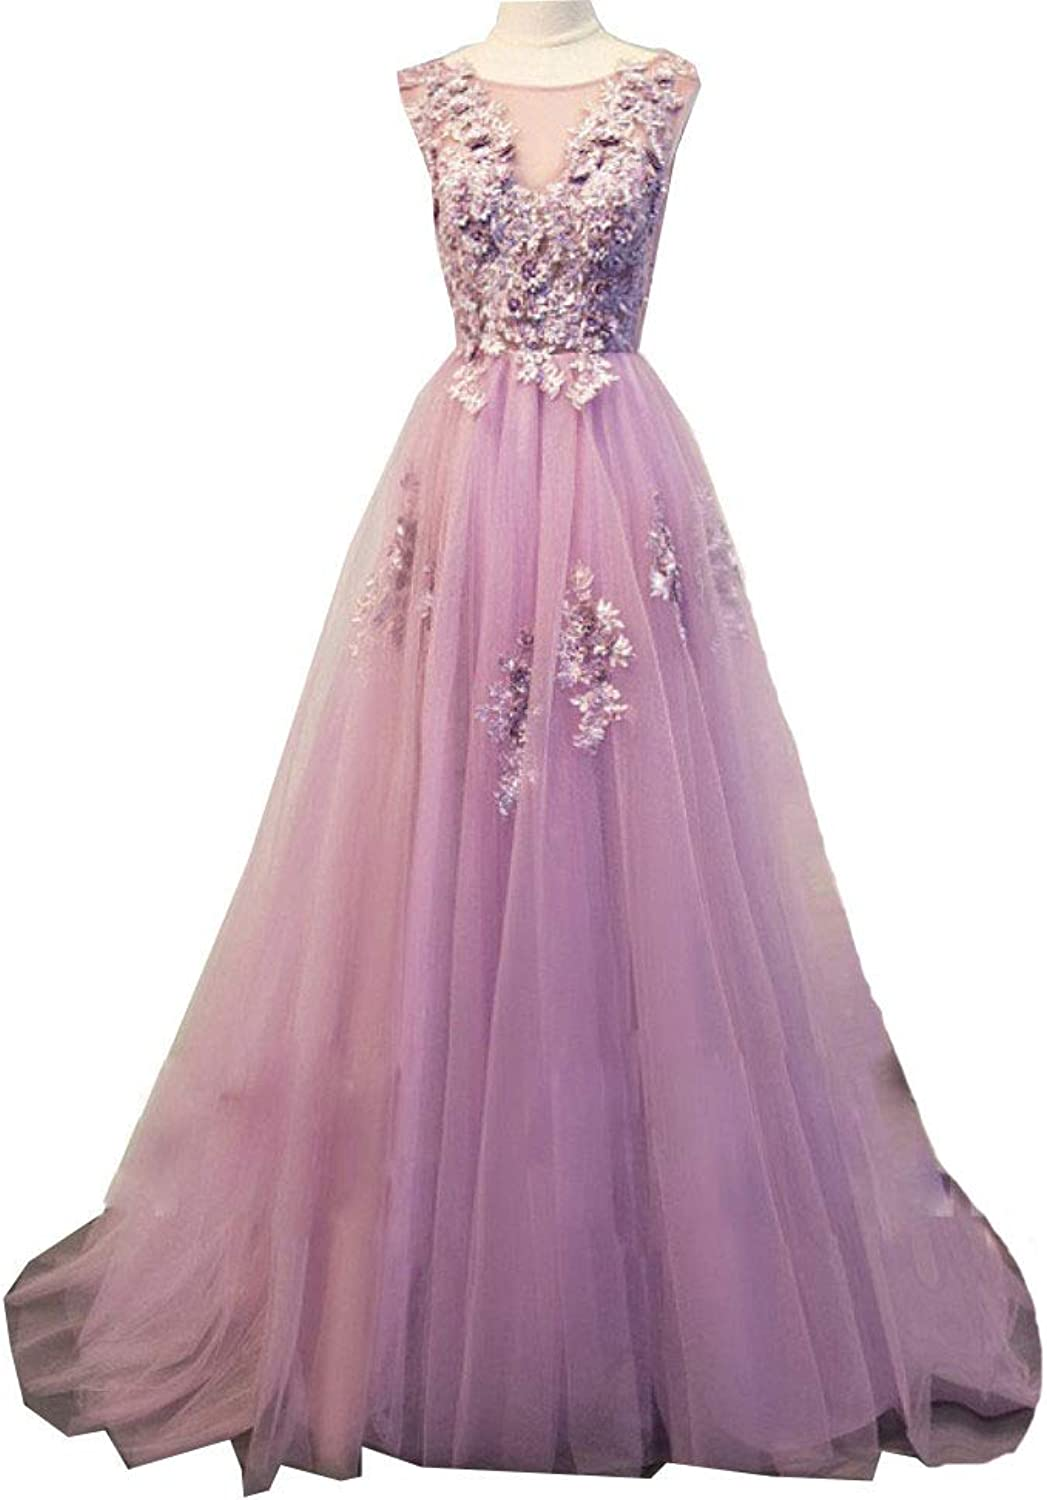 Liaoye Women's Long 2018 Prom Dresses VNeck Tulle Lace Appliques Evening Gowns Party Dress